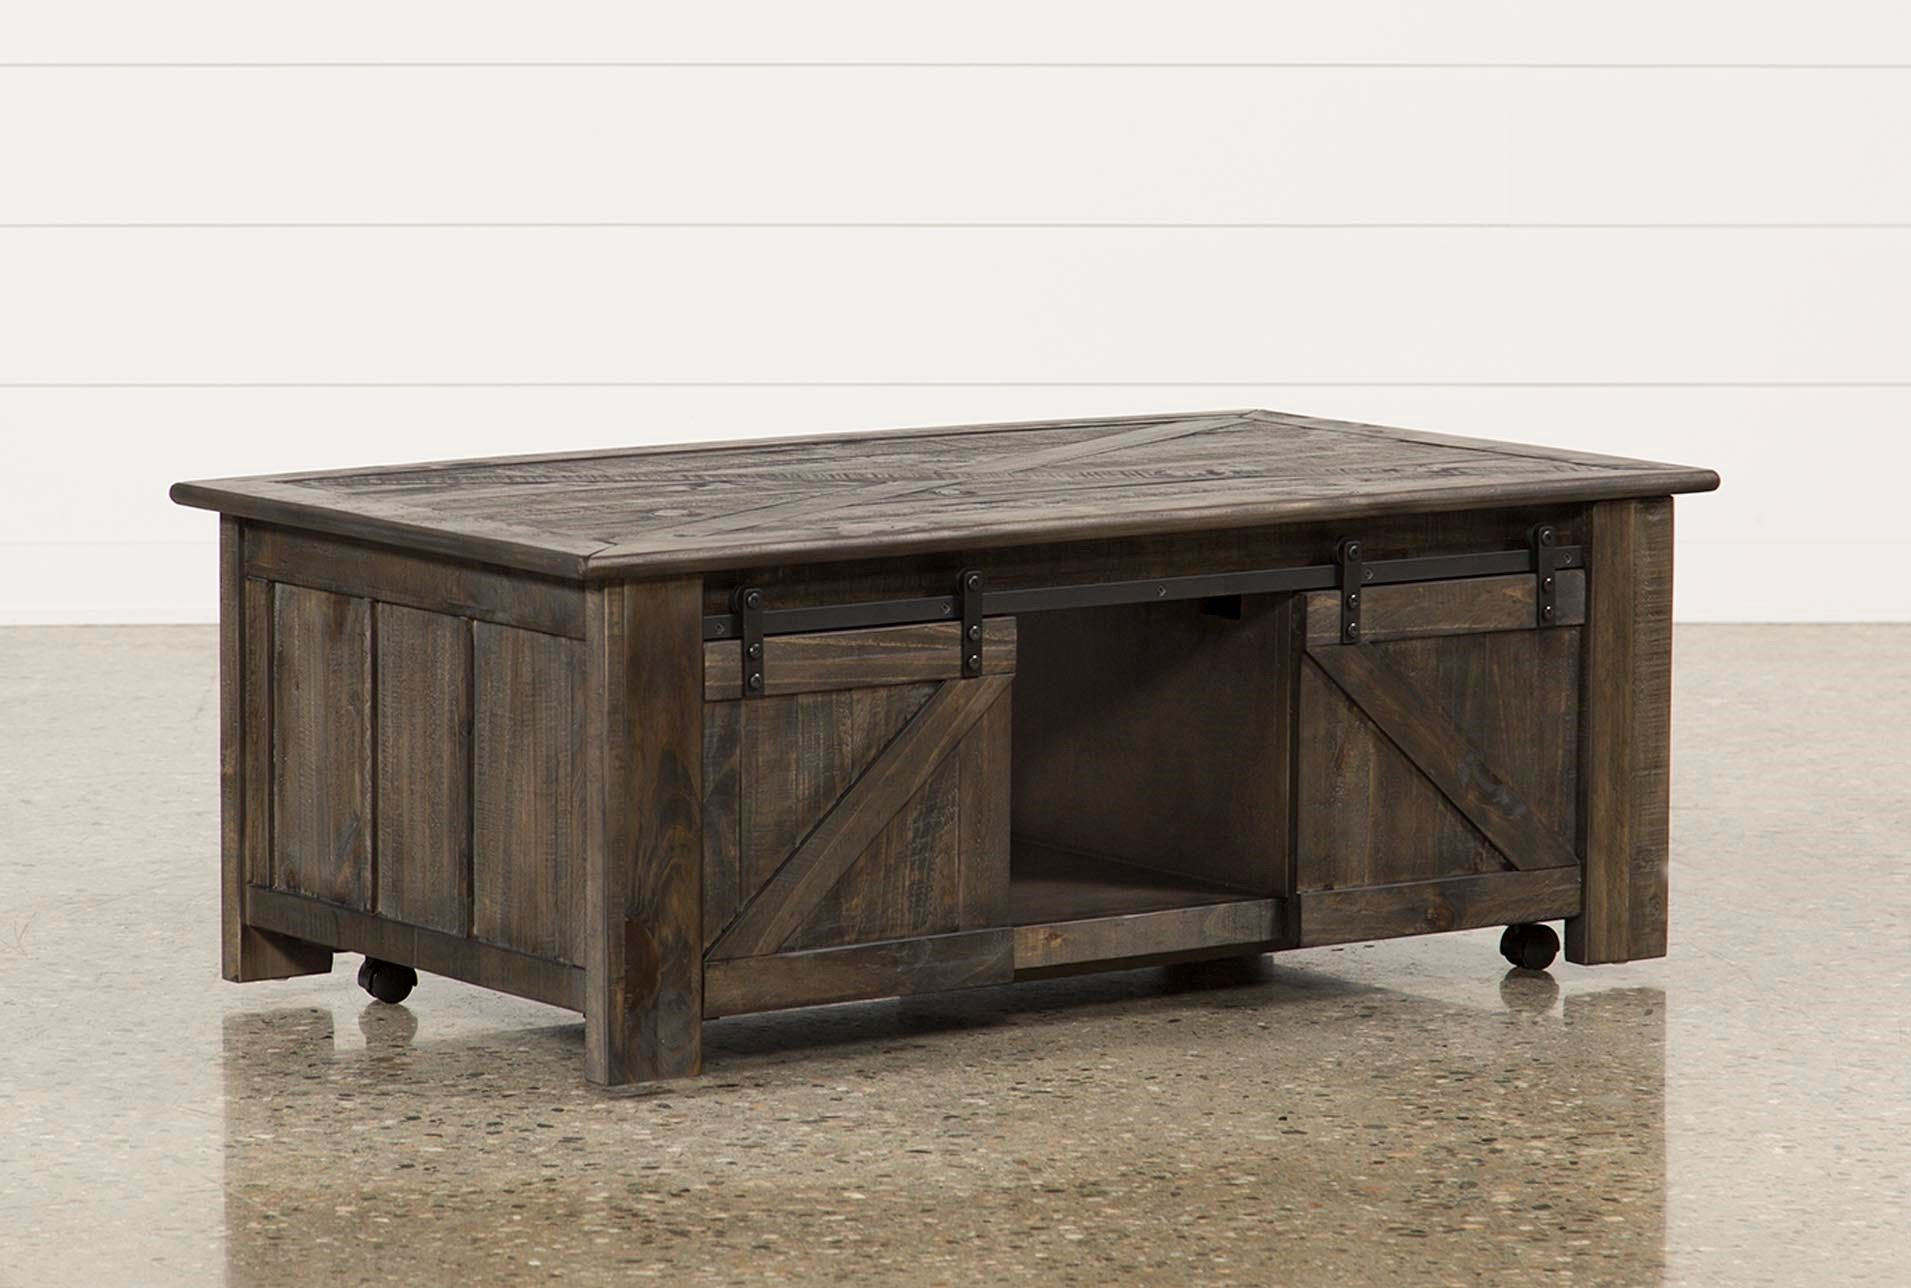 When It Comes To Furniture With Character Our Grant Cocktail Table Delivers That And More From The Coffee Table Farmhouse Lift Top Coffee Table Coffee Table [ 1288 x 1911 Pixel ]